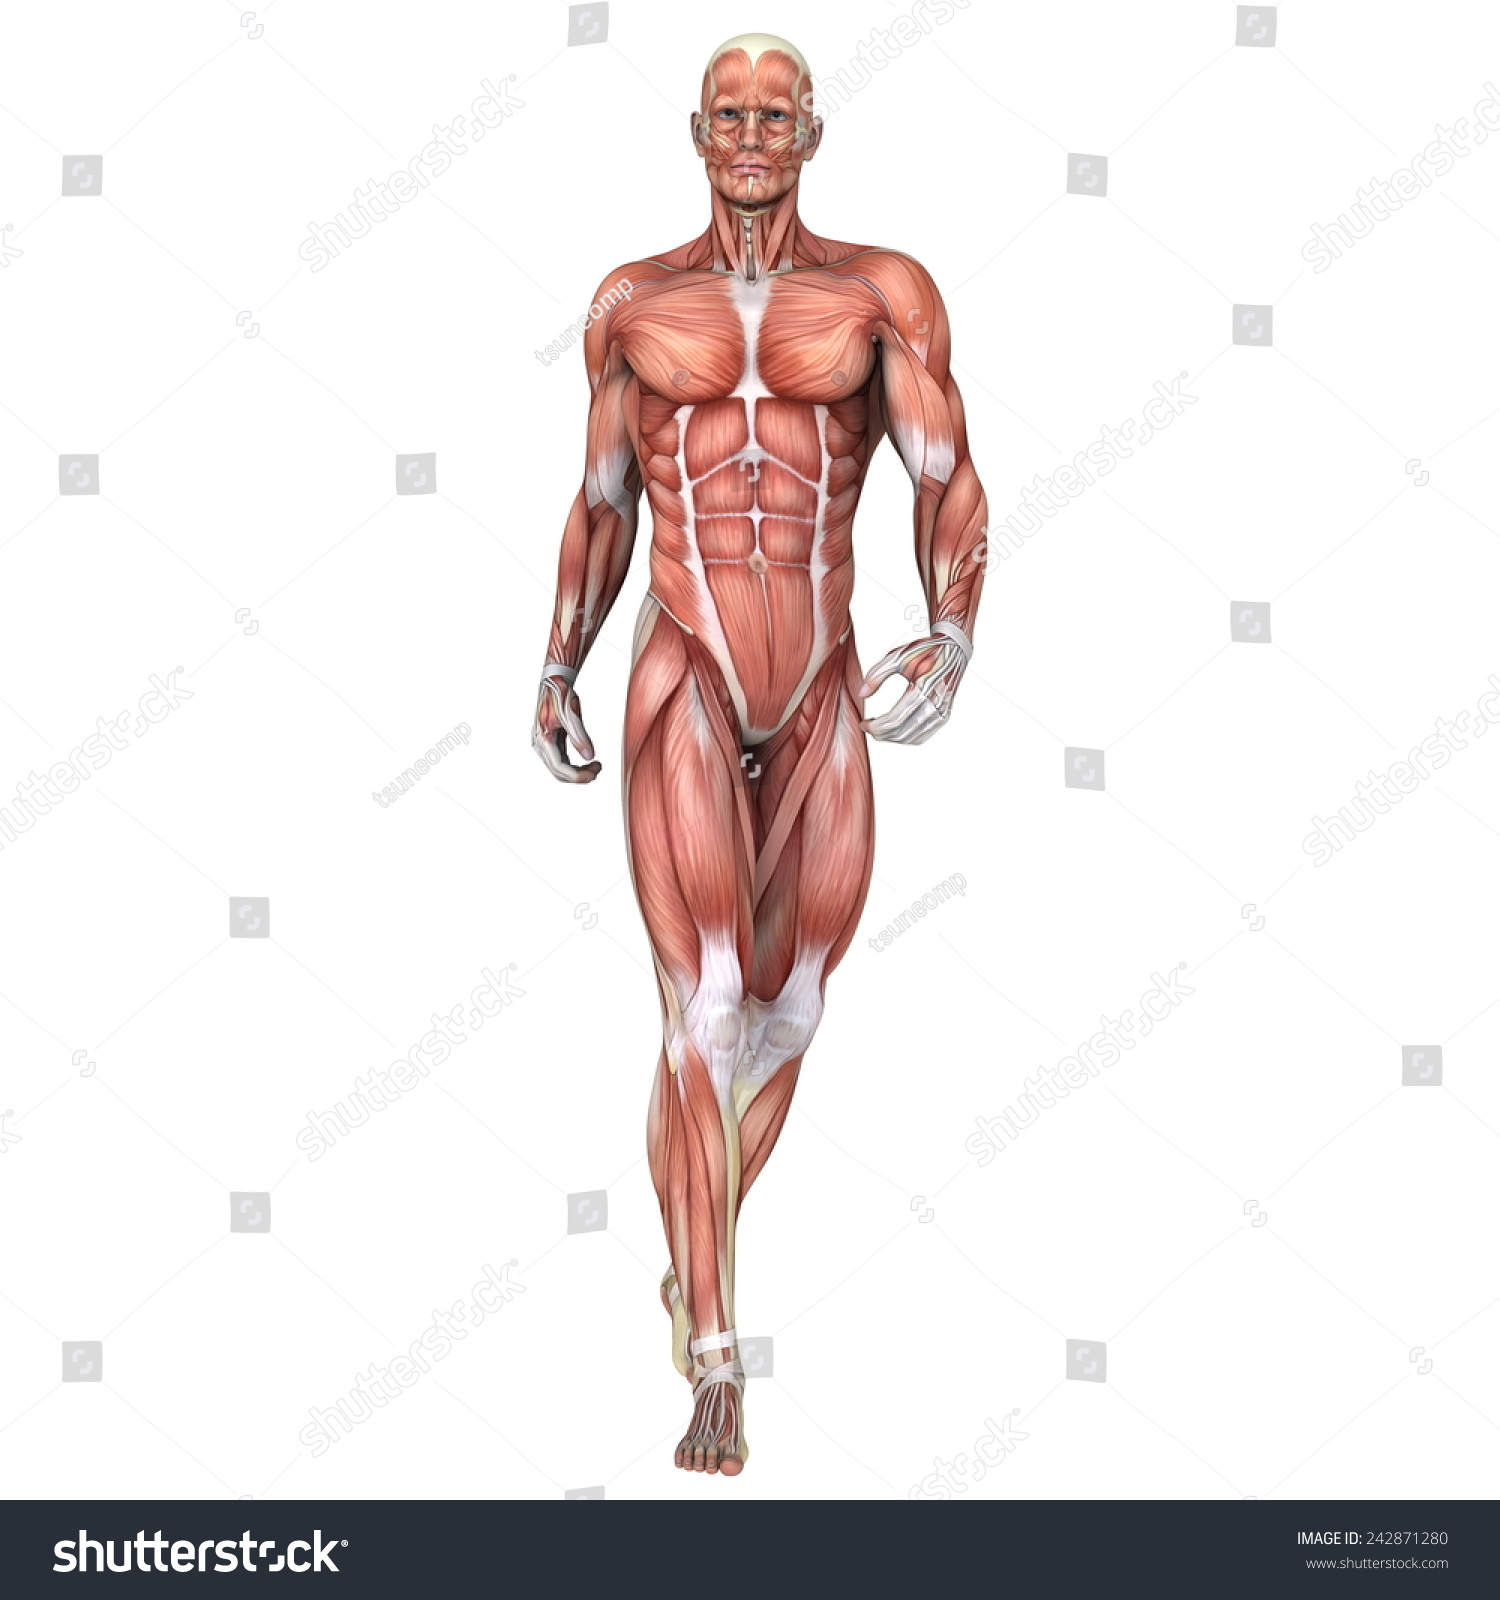 3d Digital Render Of A Standing Male Anatomy Figure With Muscles Map